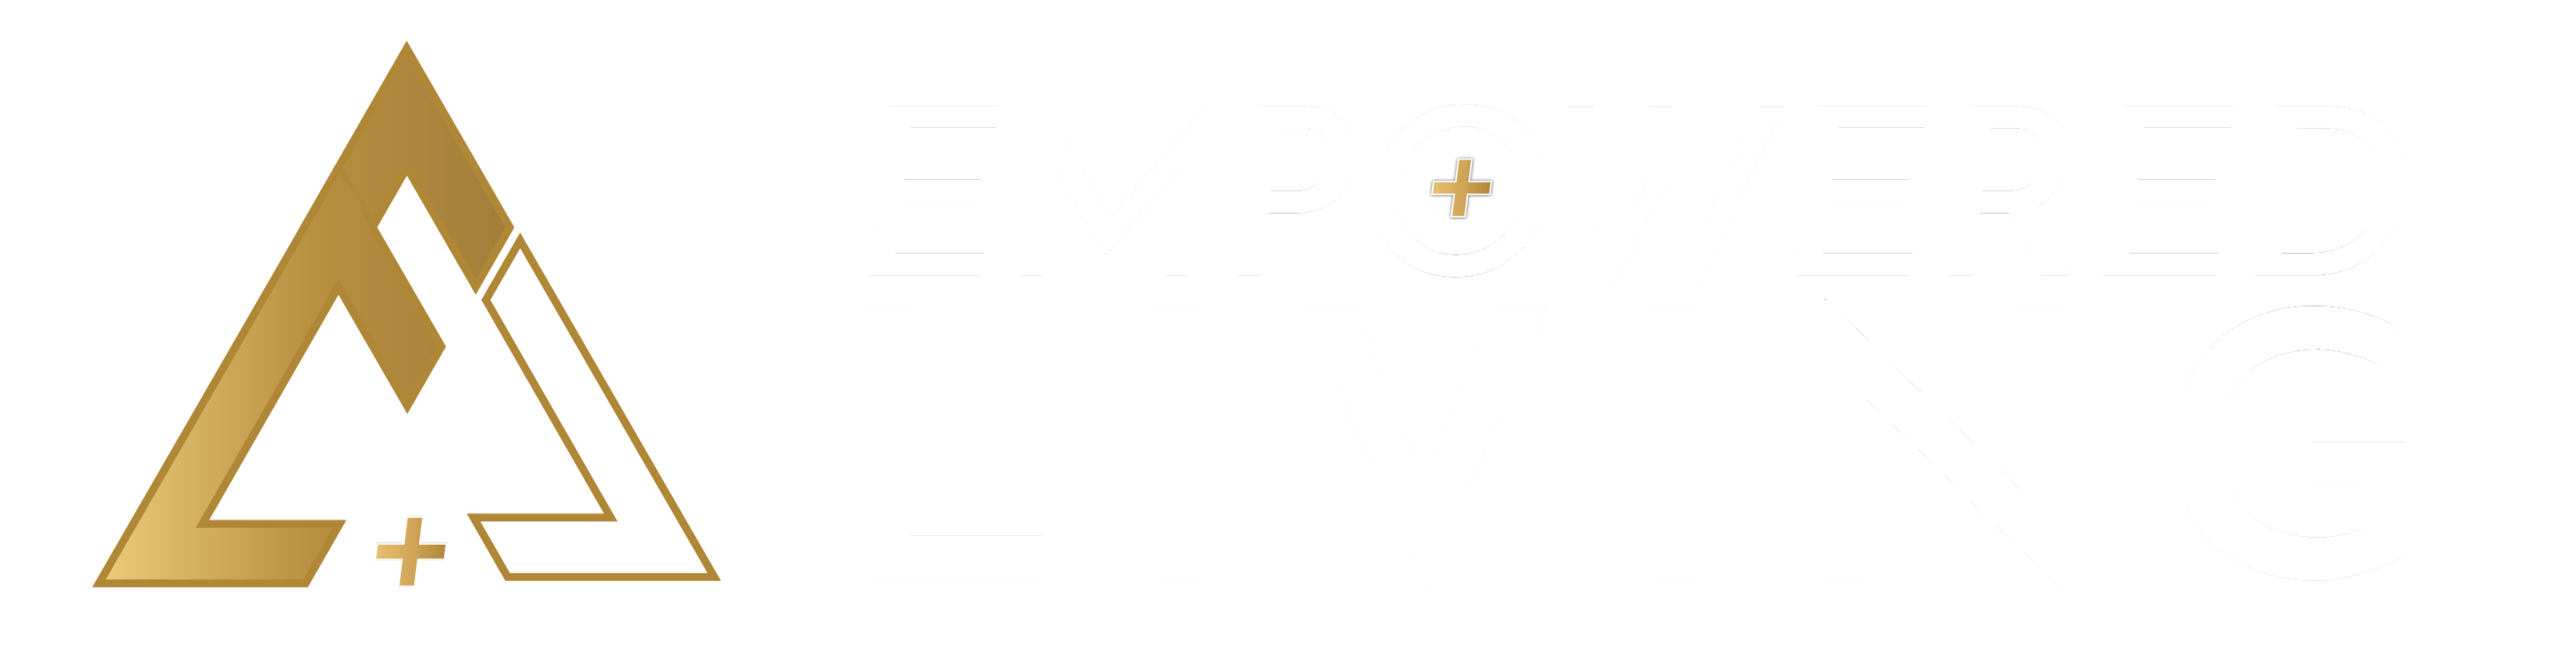 Empowered Living goto